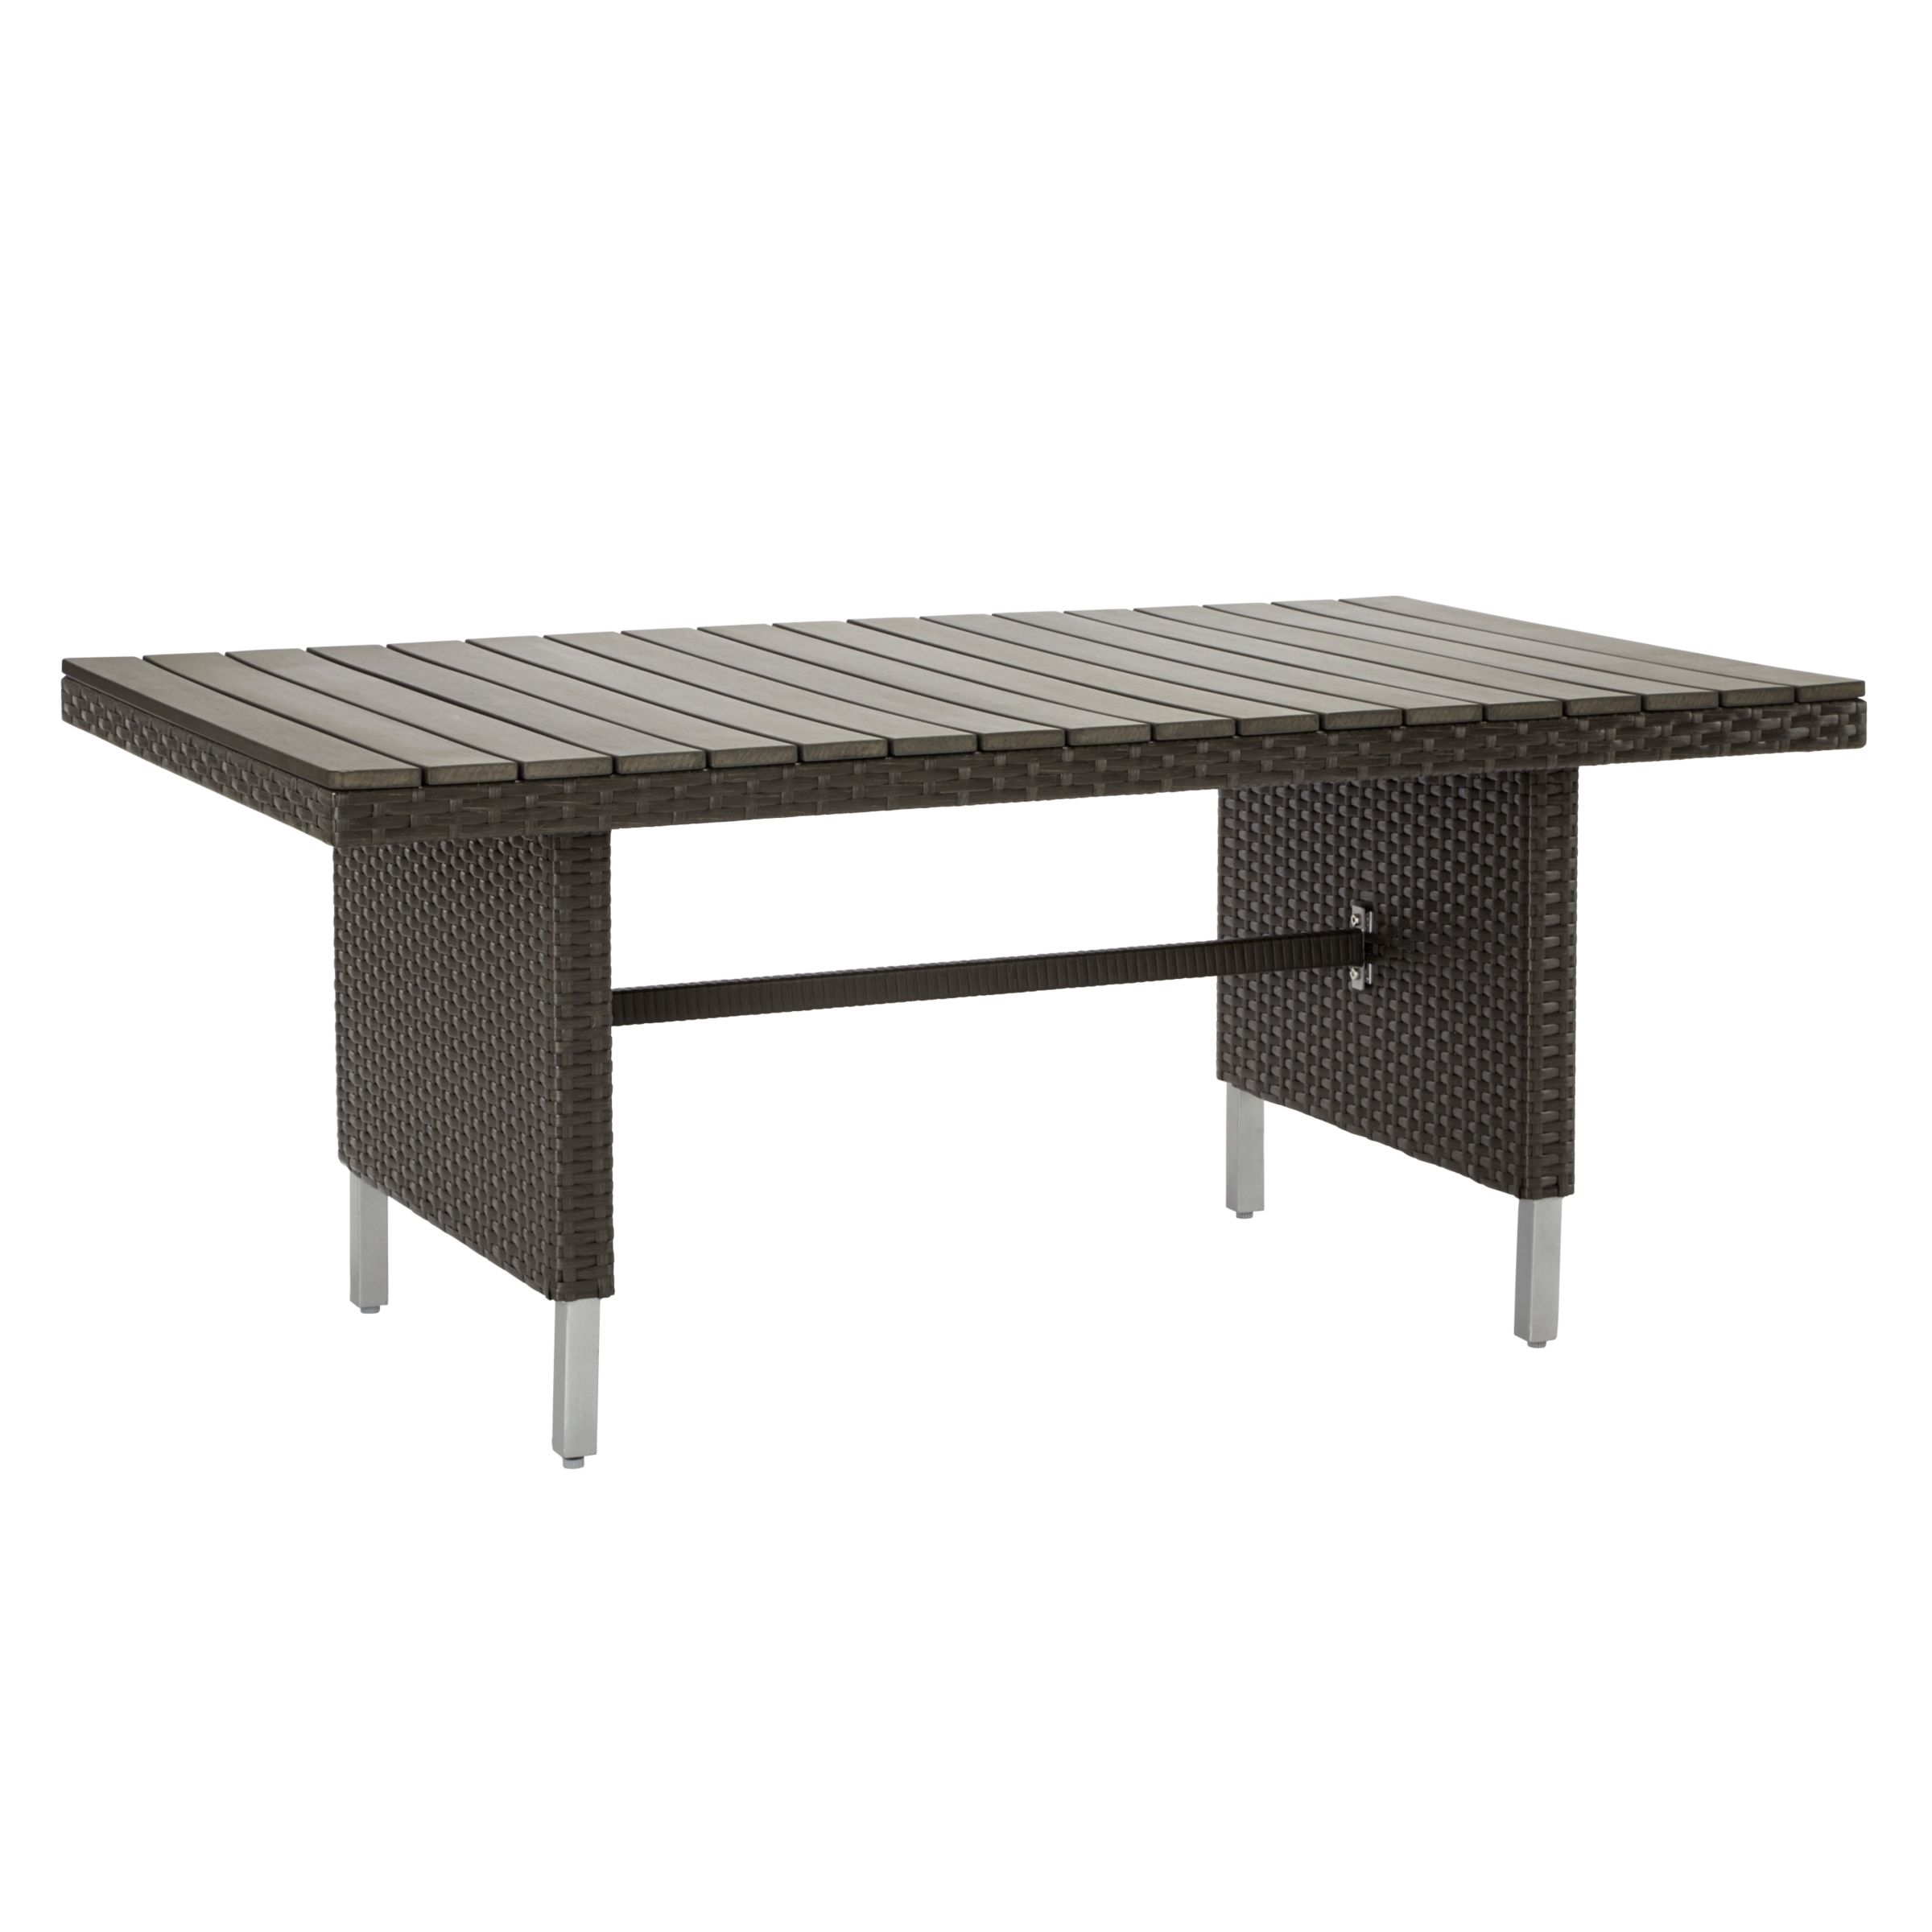 20 Seater Dining Table John Lewis Madrid 6 8 Seater Outdoor Dining Table At John